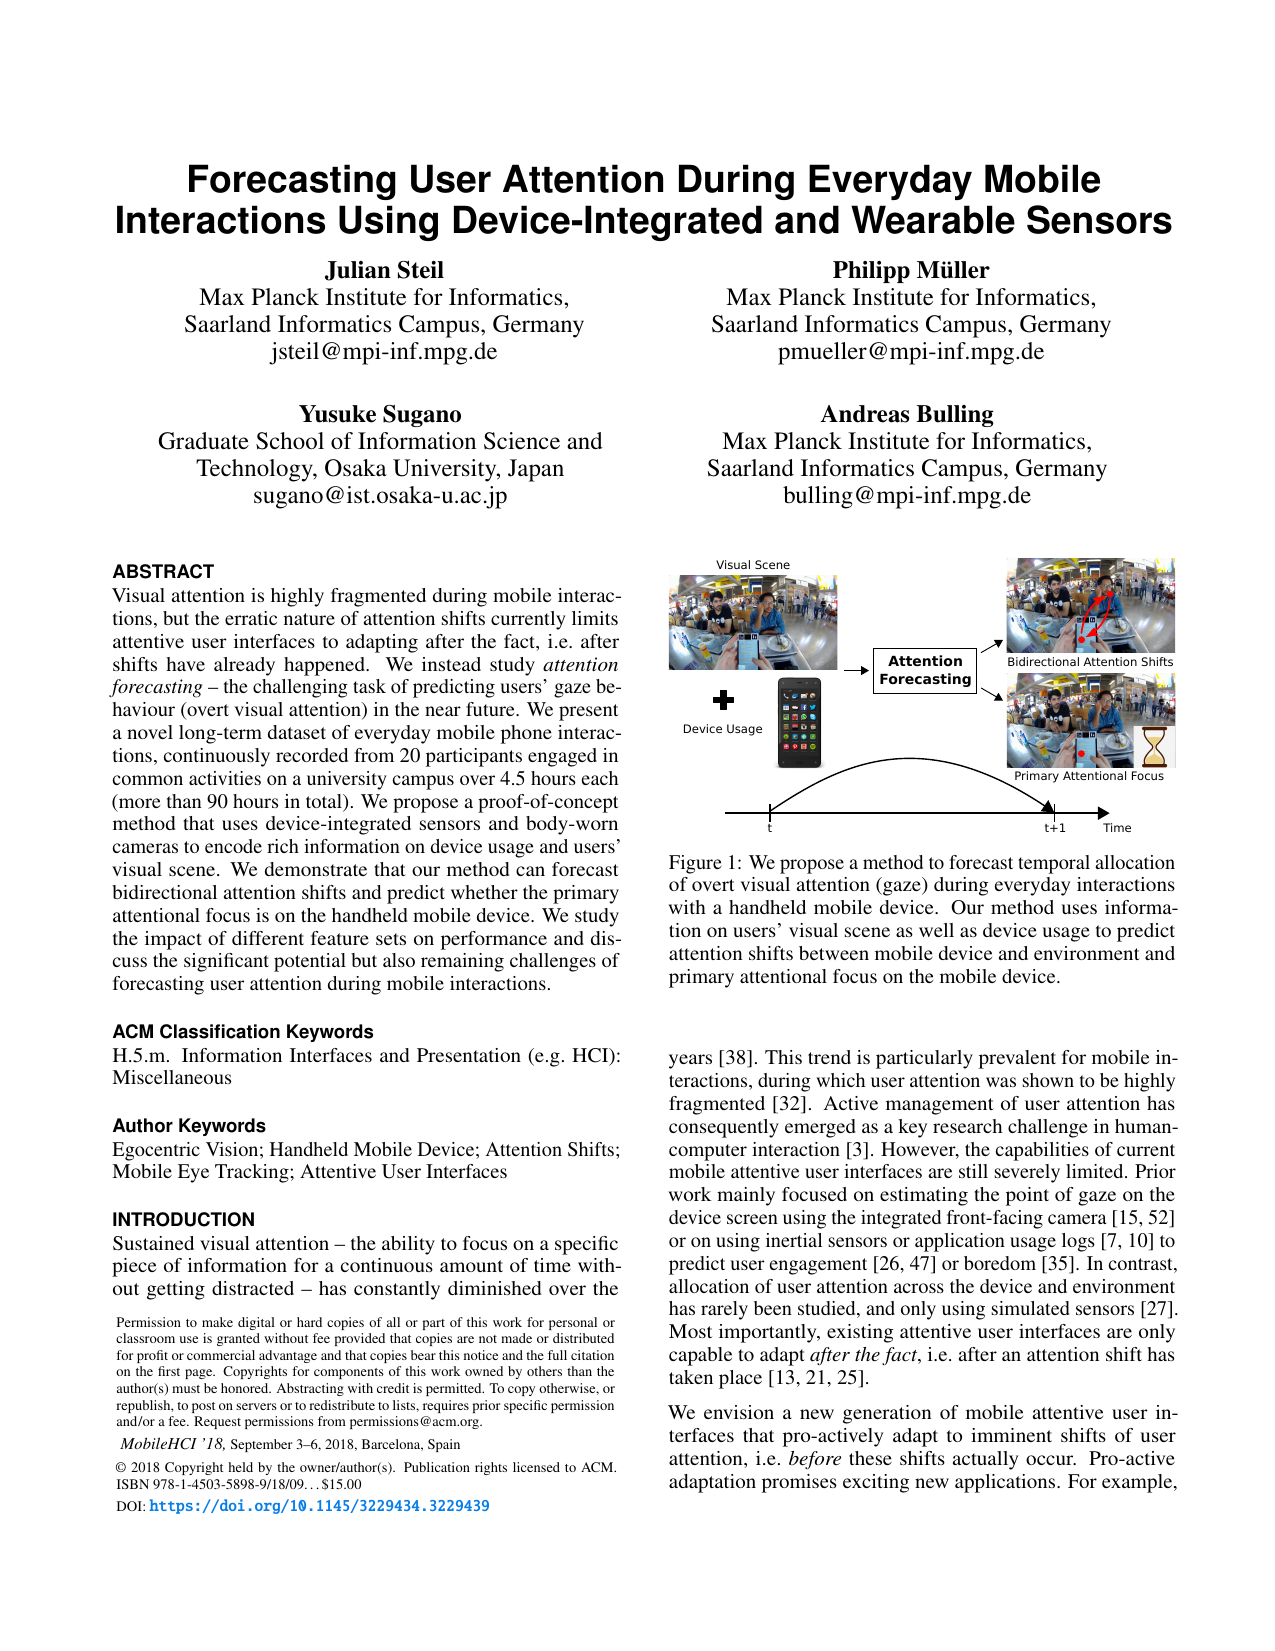 Forecasting User Attention During Everyday Mobile Interactions Using Device-Integrated and Wearable Sensors